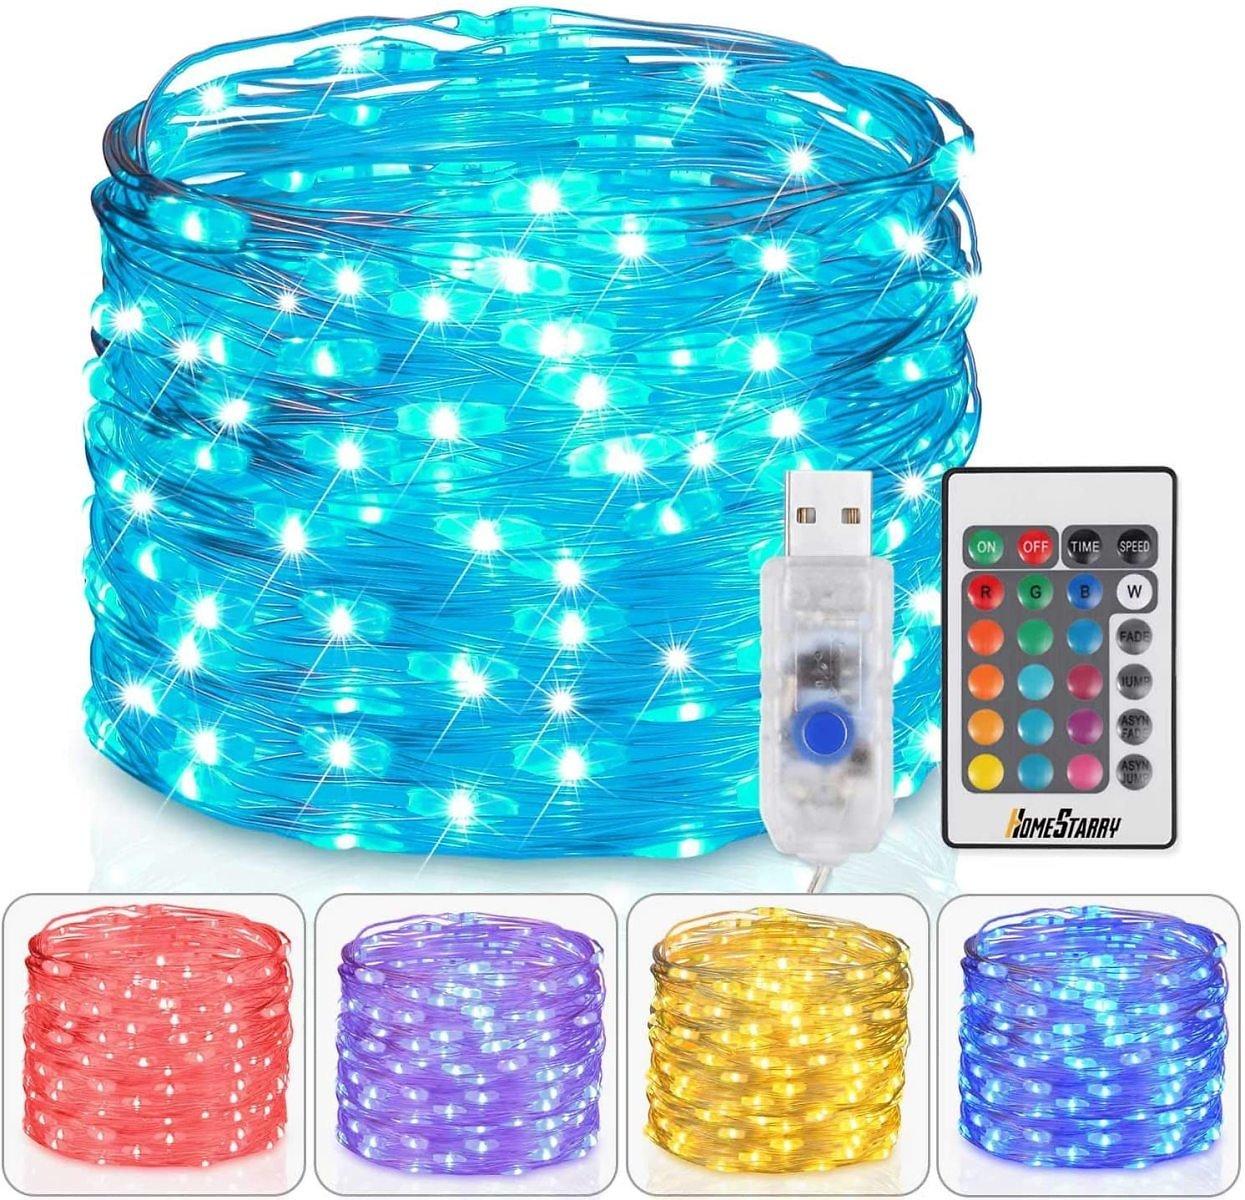 Homestarry Fairy Lights USB Plug In String Lights with Remote 33ft 100LEDs, 16 Color Changing Lights Twinkle Firefly Lights for